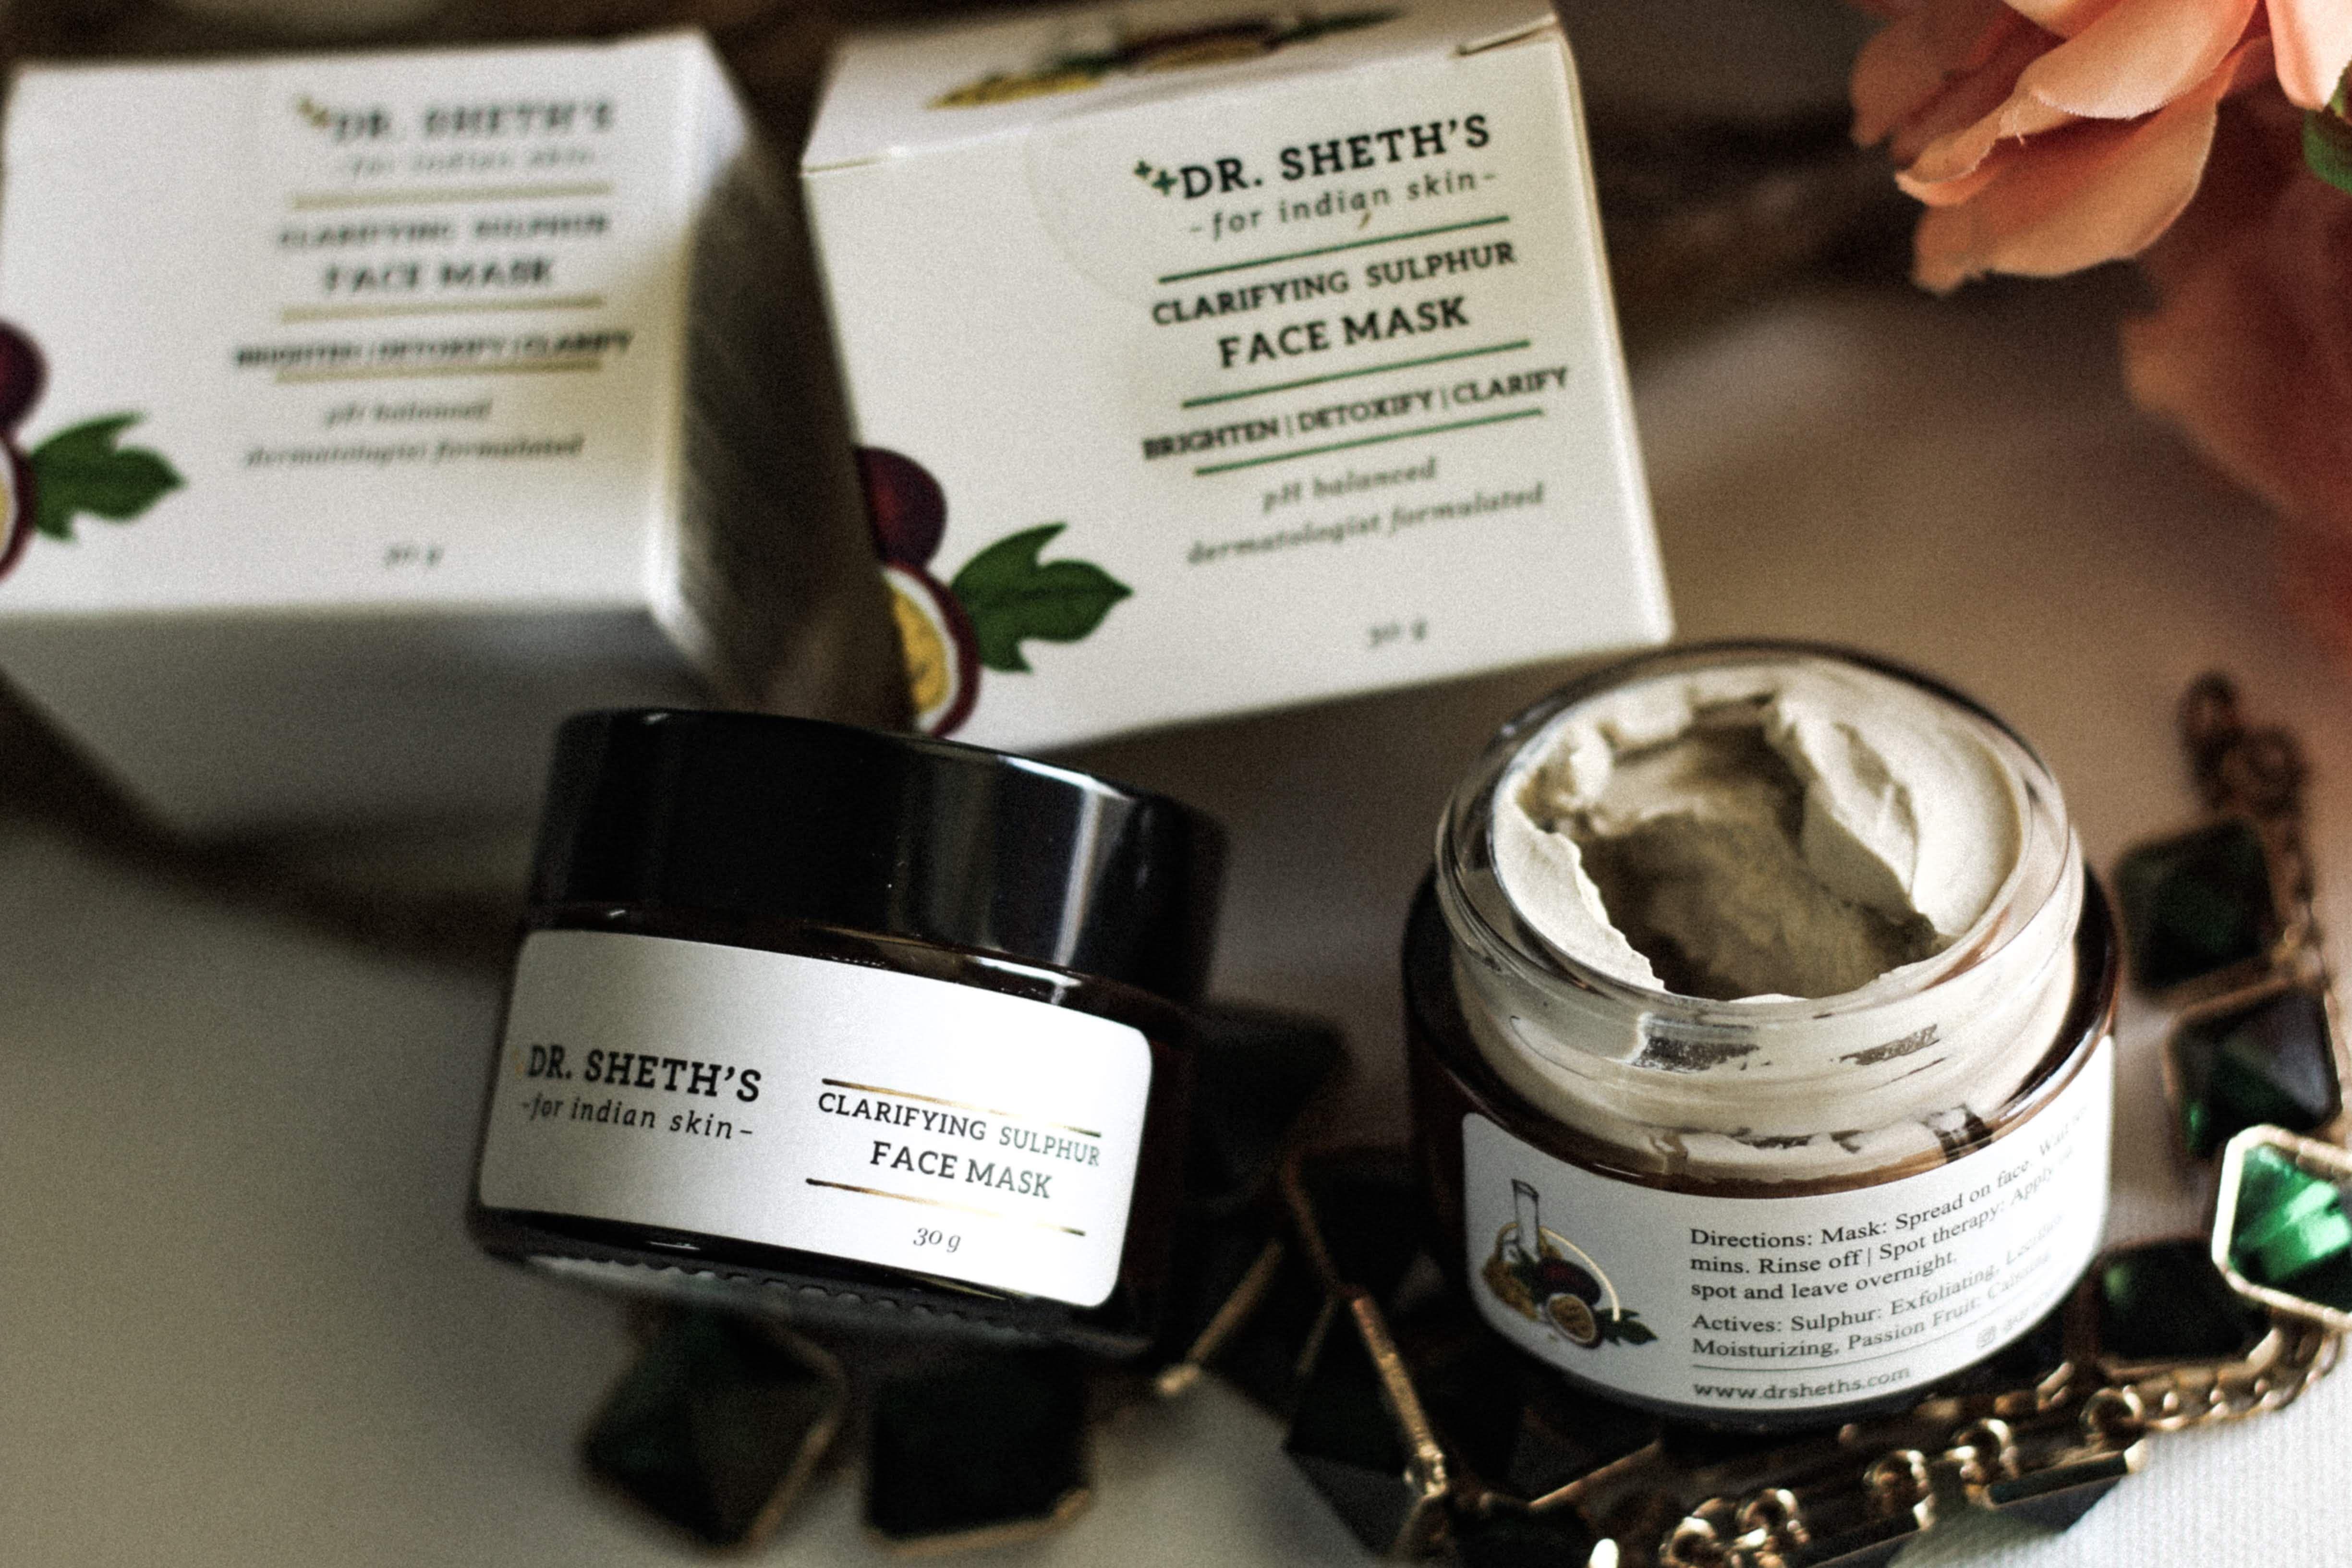 Dr. Sheth's Clarifying Sulphur Face Mask | Review